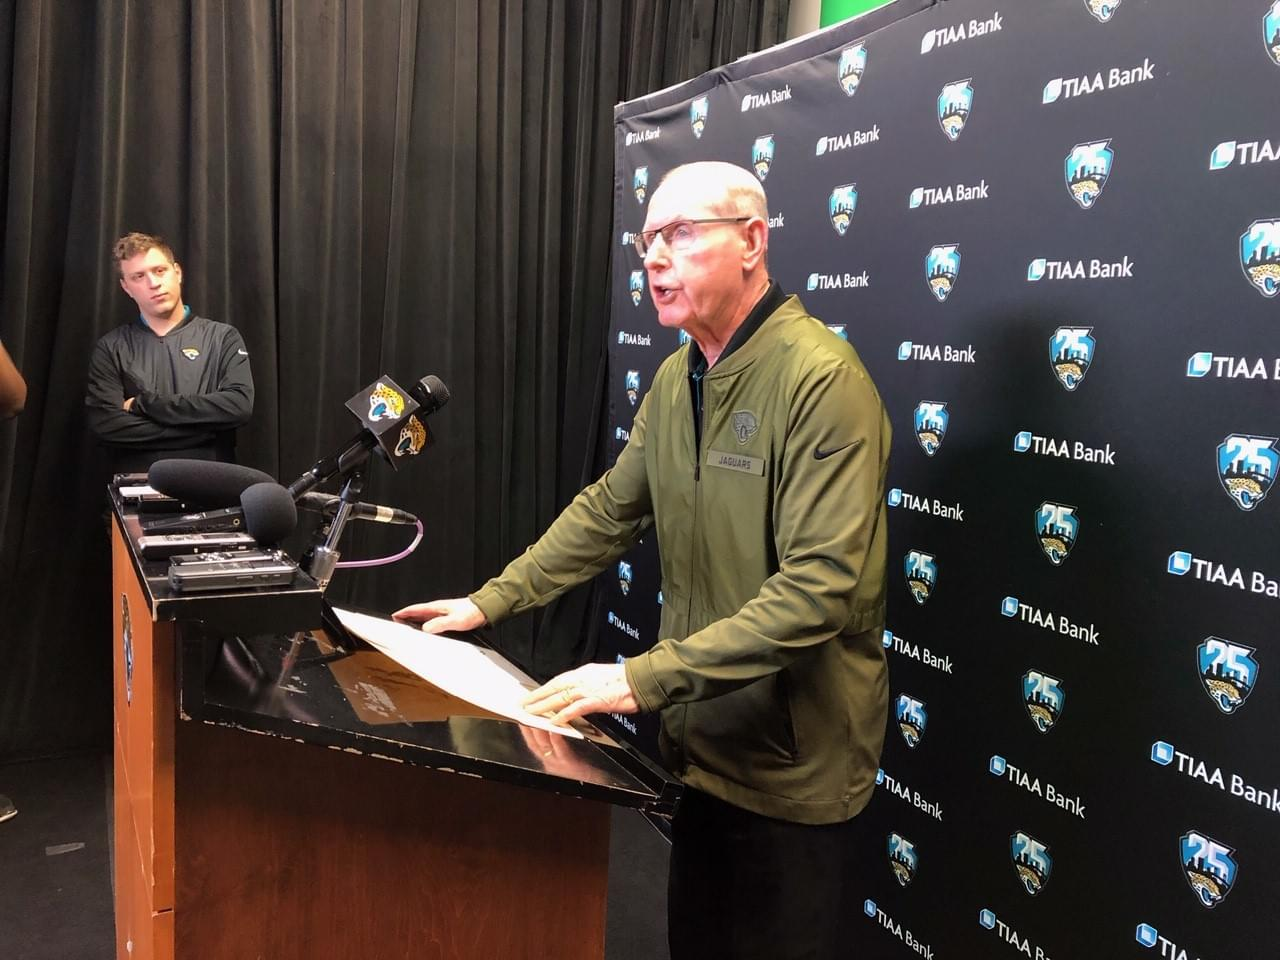 Tom Coughlin asks fans to support Jaguars, but offers them no explanations